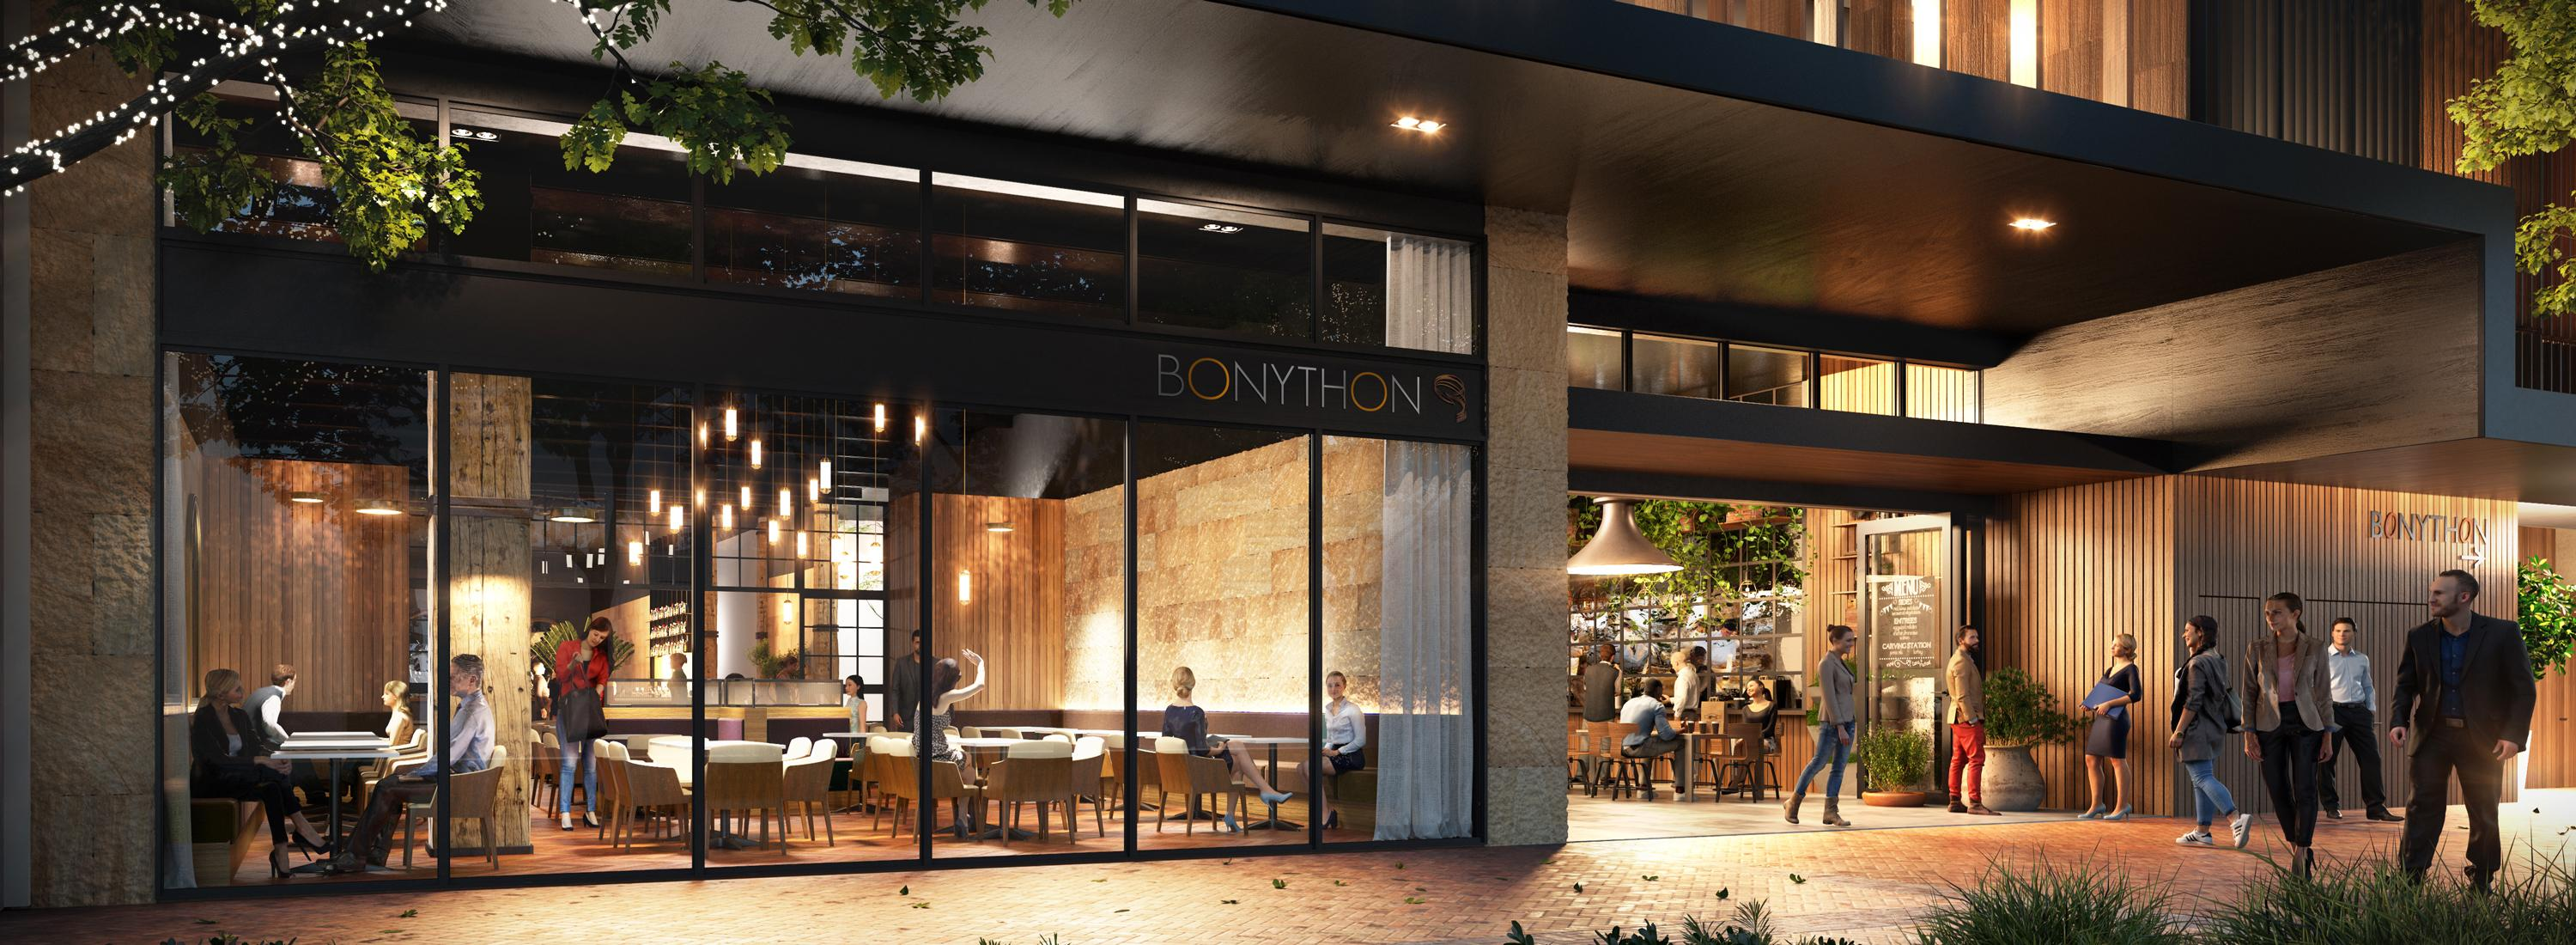 bonython tower restaurant